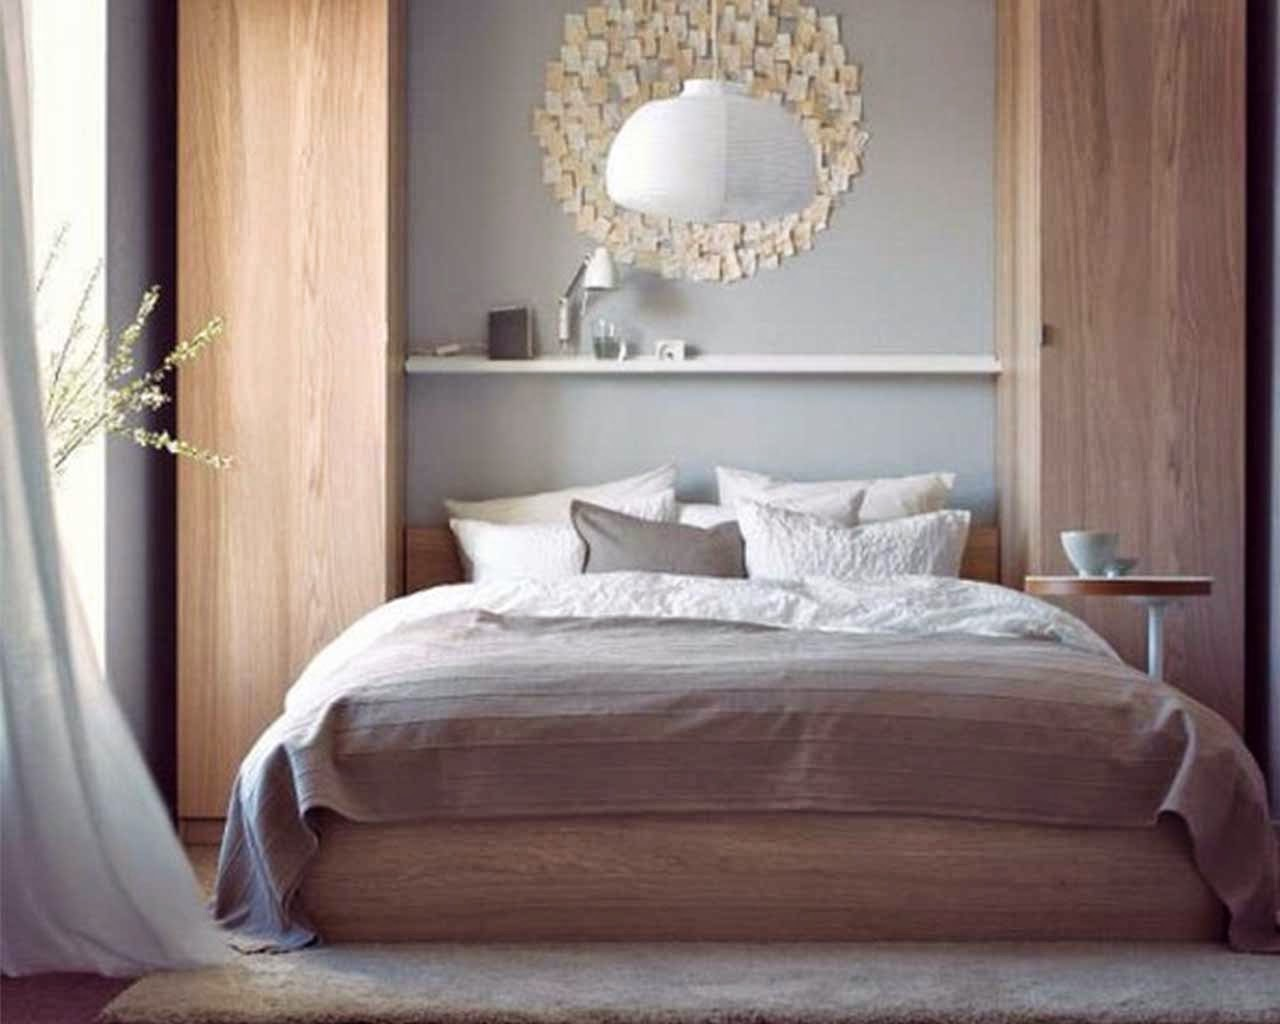 Elegant ikea bedroom concept for girl cool and modern interior